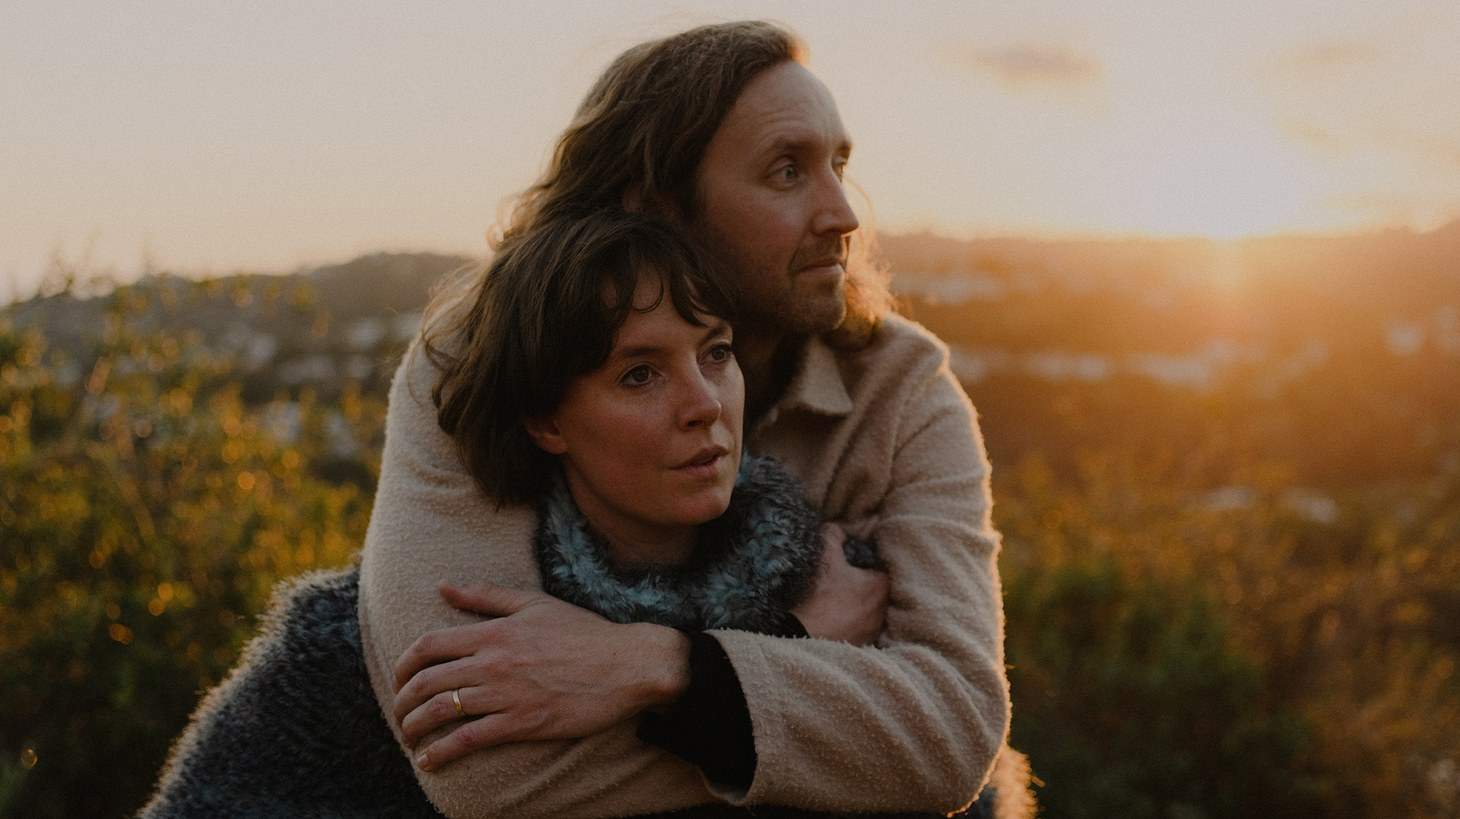 Sylvan Esso set out on a limited engagement performance series in 2019, making stops at Walt Disney Concert Hall in LA and hometown shows at Durham Performing Arts Center.